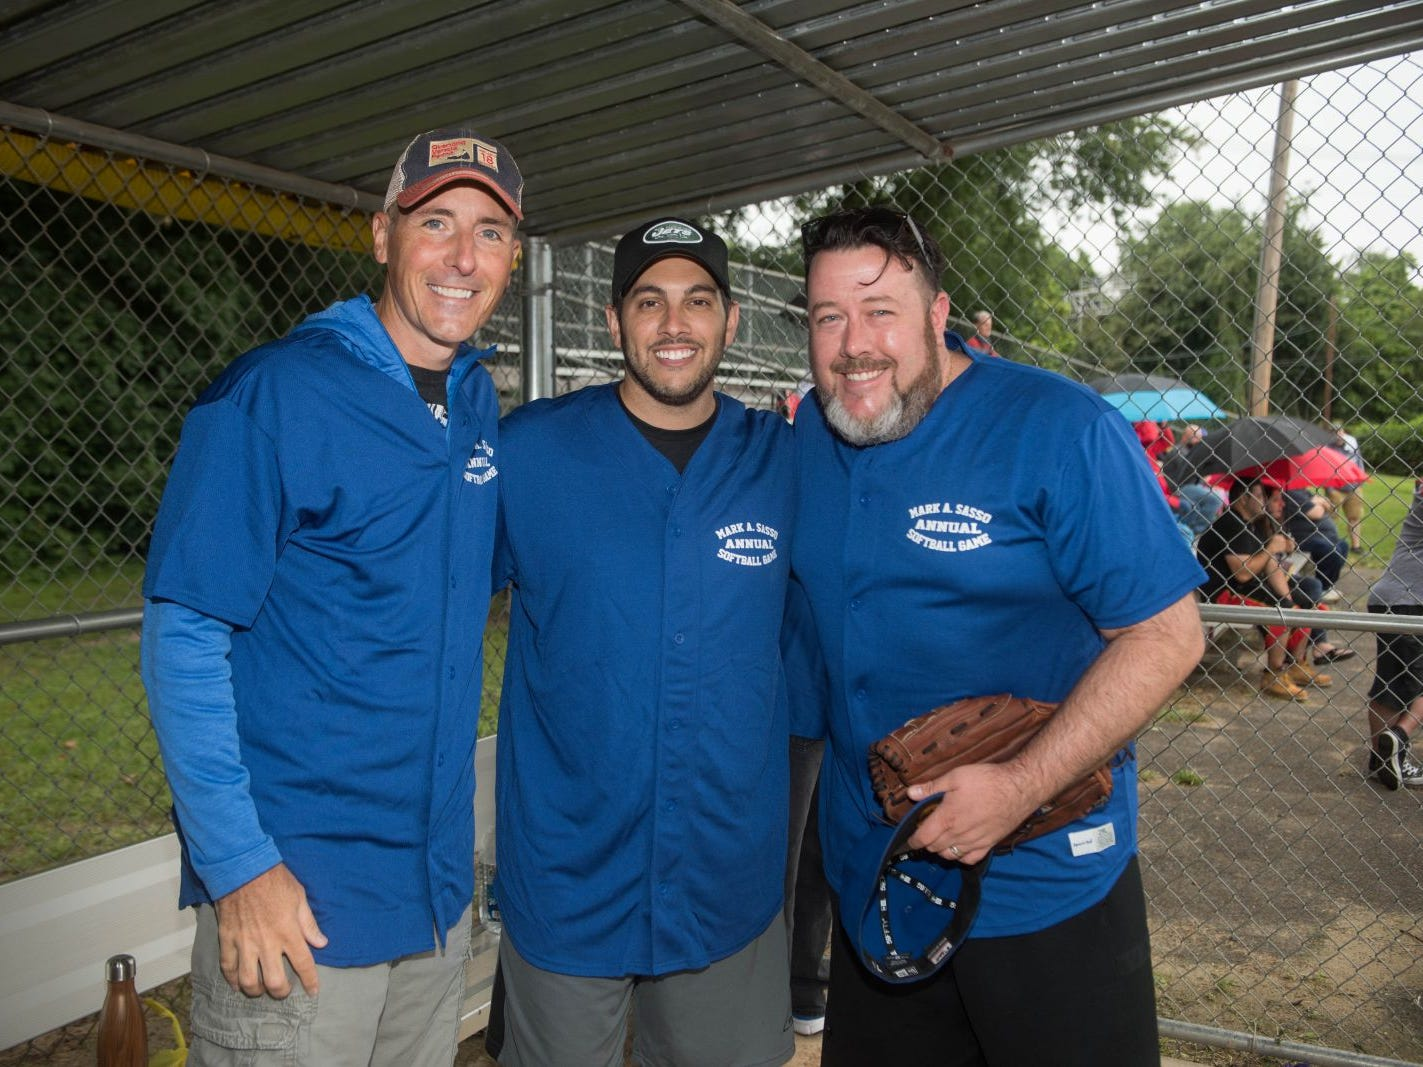 Gordon Damer, Dan Graca and Ryan Hurley. Mark A. Sasso Memorial Fund hosted its 10th annual Softball Fundraiser this past Saturday at Wagaraw Baseball Field in Hawthorne. Don La Greca was joined by many of his fellow ESPN personalities and celebrity guests to play against the winning ALRC team from the round robin tournament that took place throughout the day. 09/08/2018